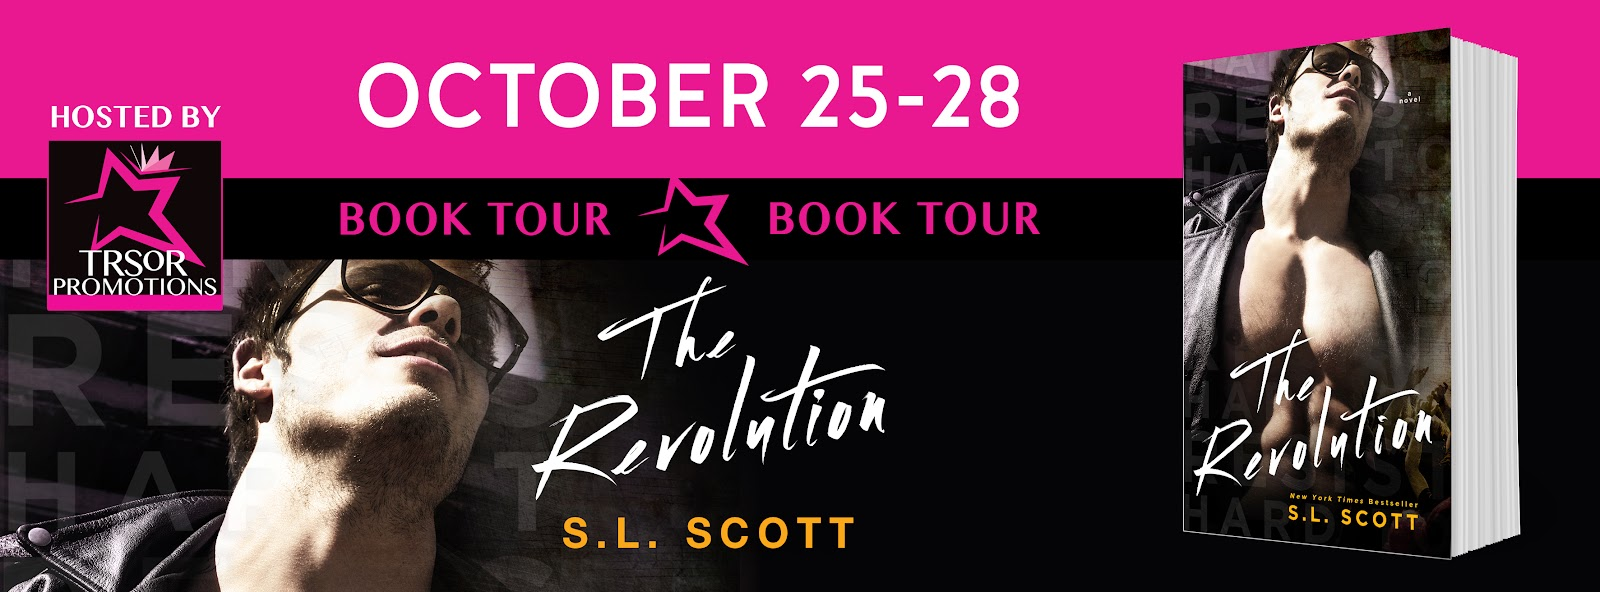 REVOLUTION_BOOK_TOUR.jpg